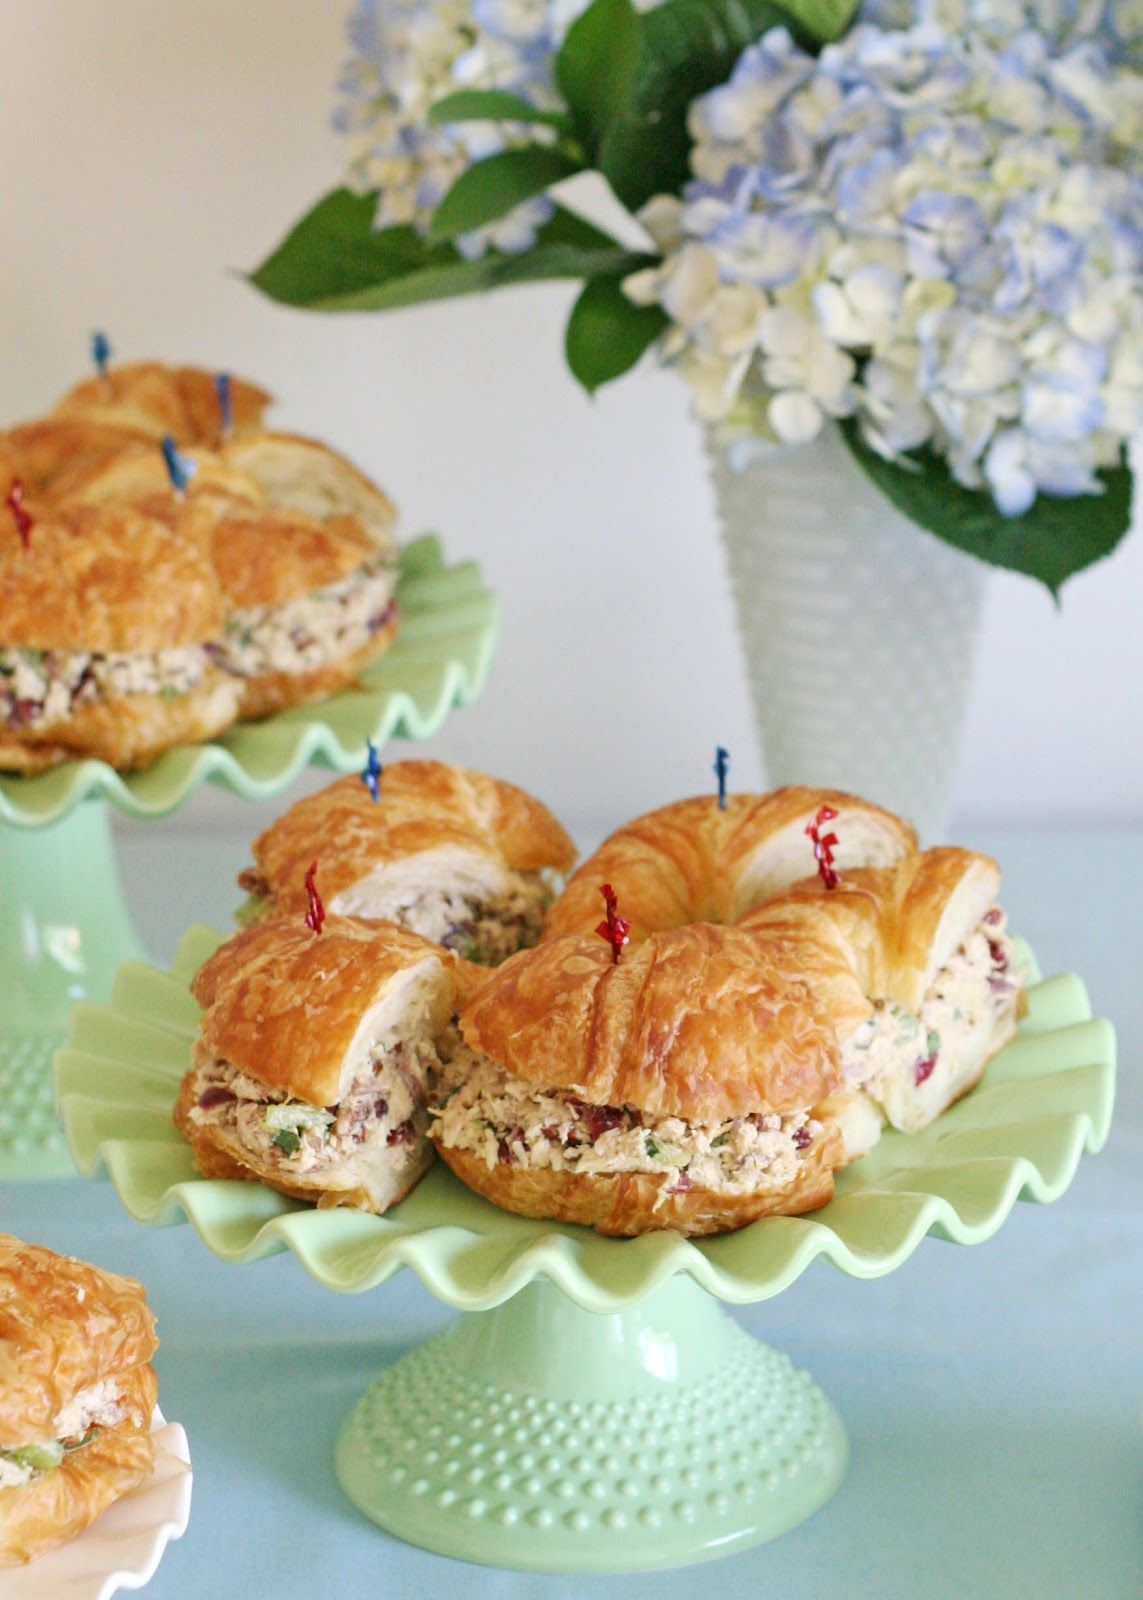 BABY SHOWER FINGER FOOD RECIPES | Often Make These Chicken Salad Sandwiches  For Parties. The Chicken .